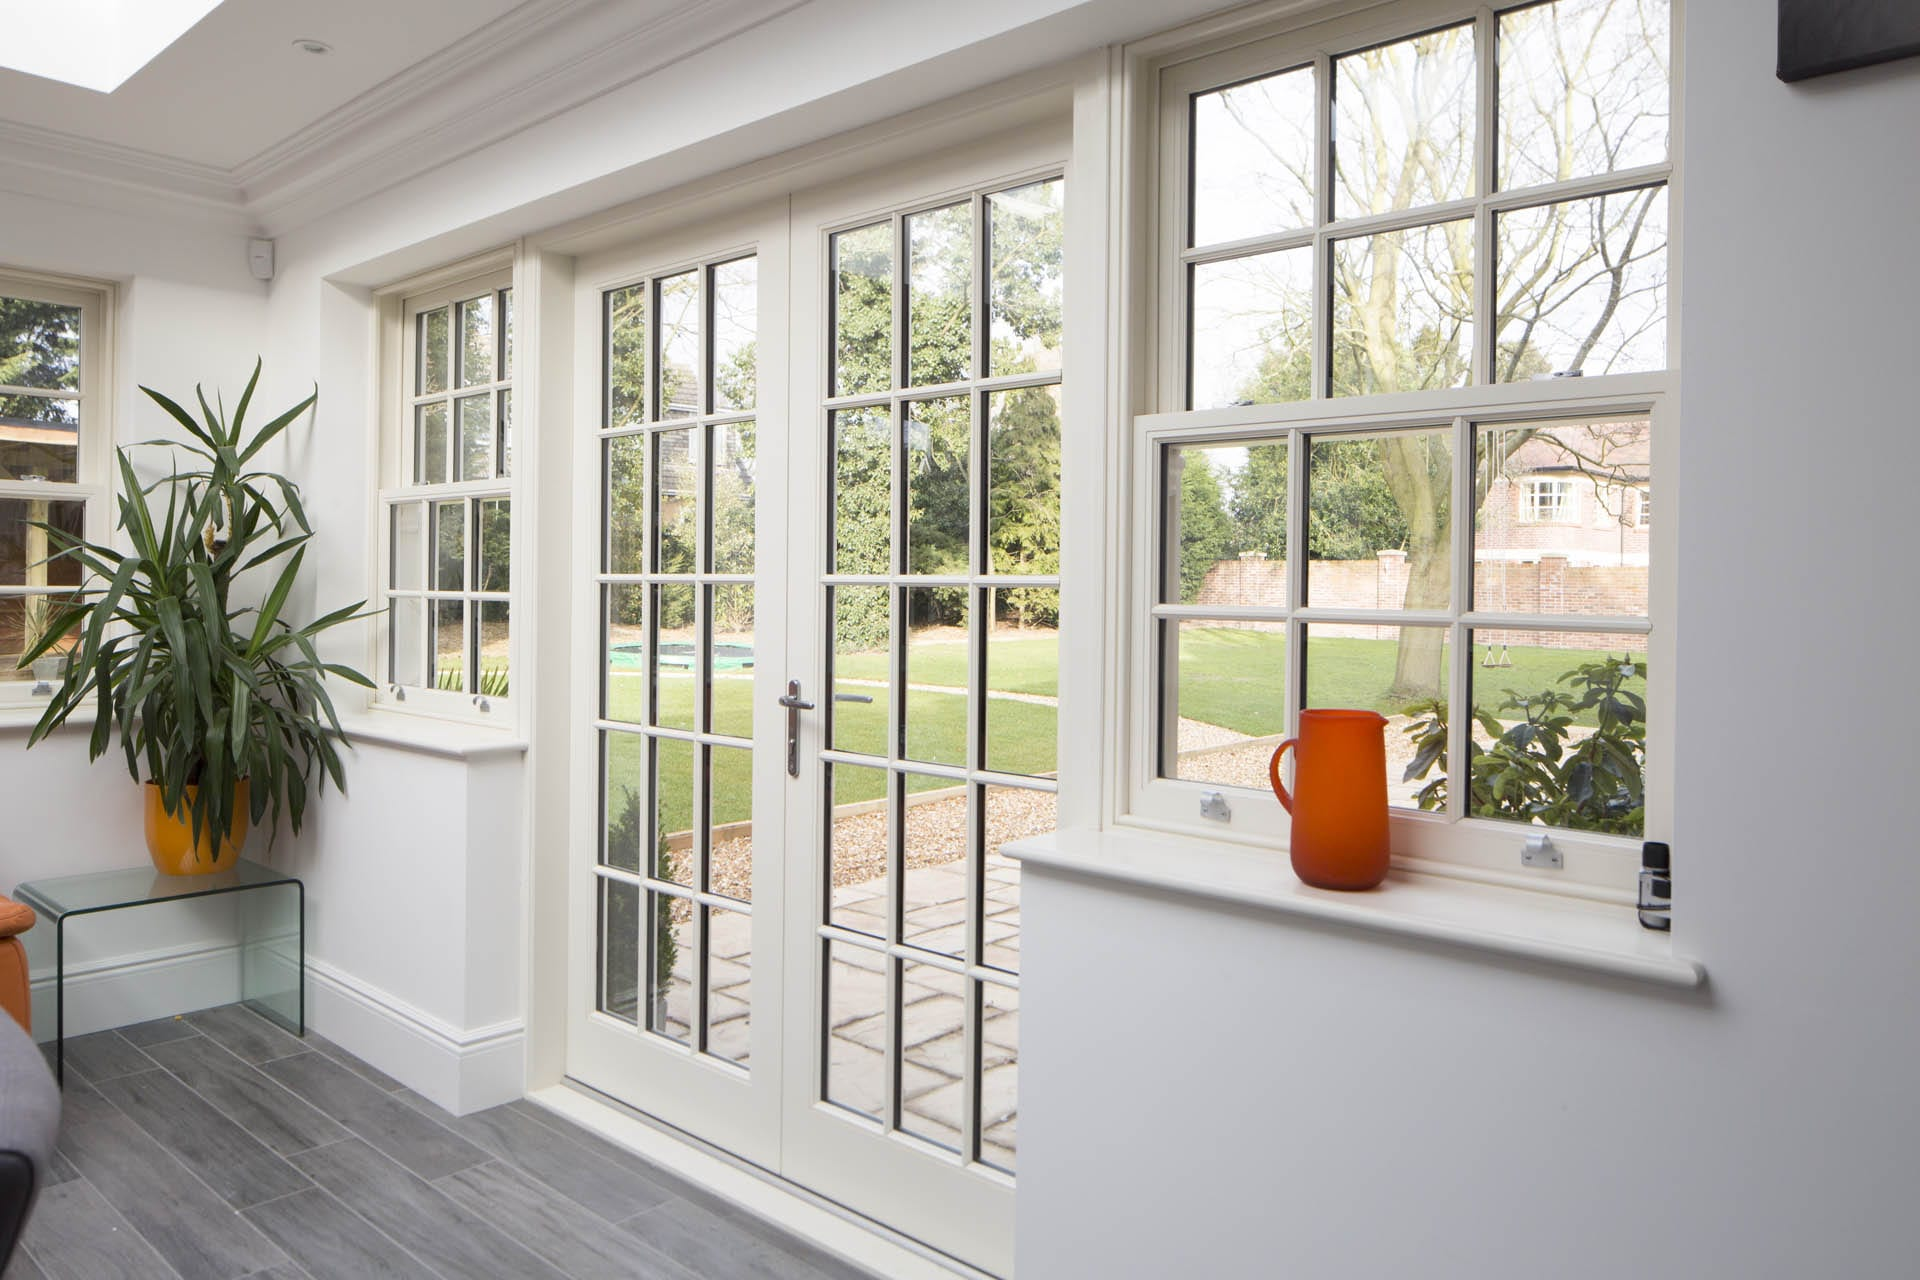 Classic range of wooden windows and doors installed in a house